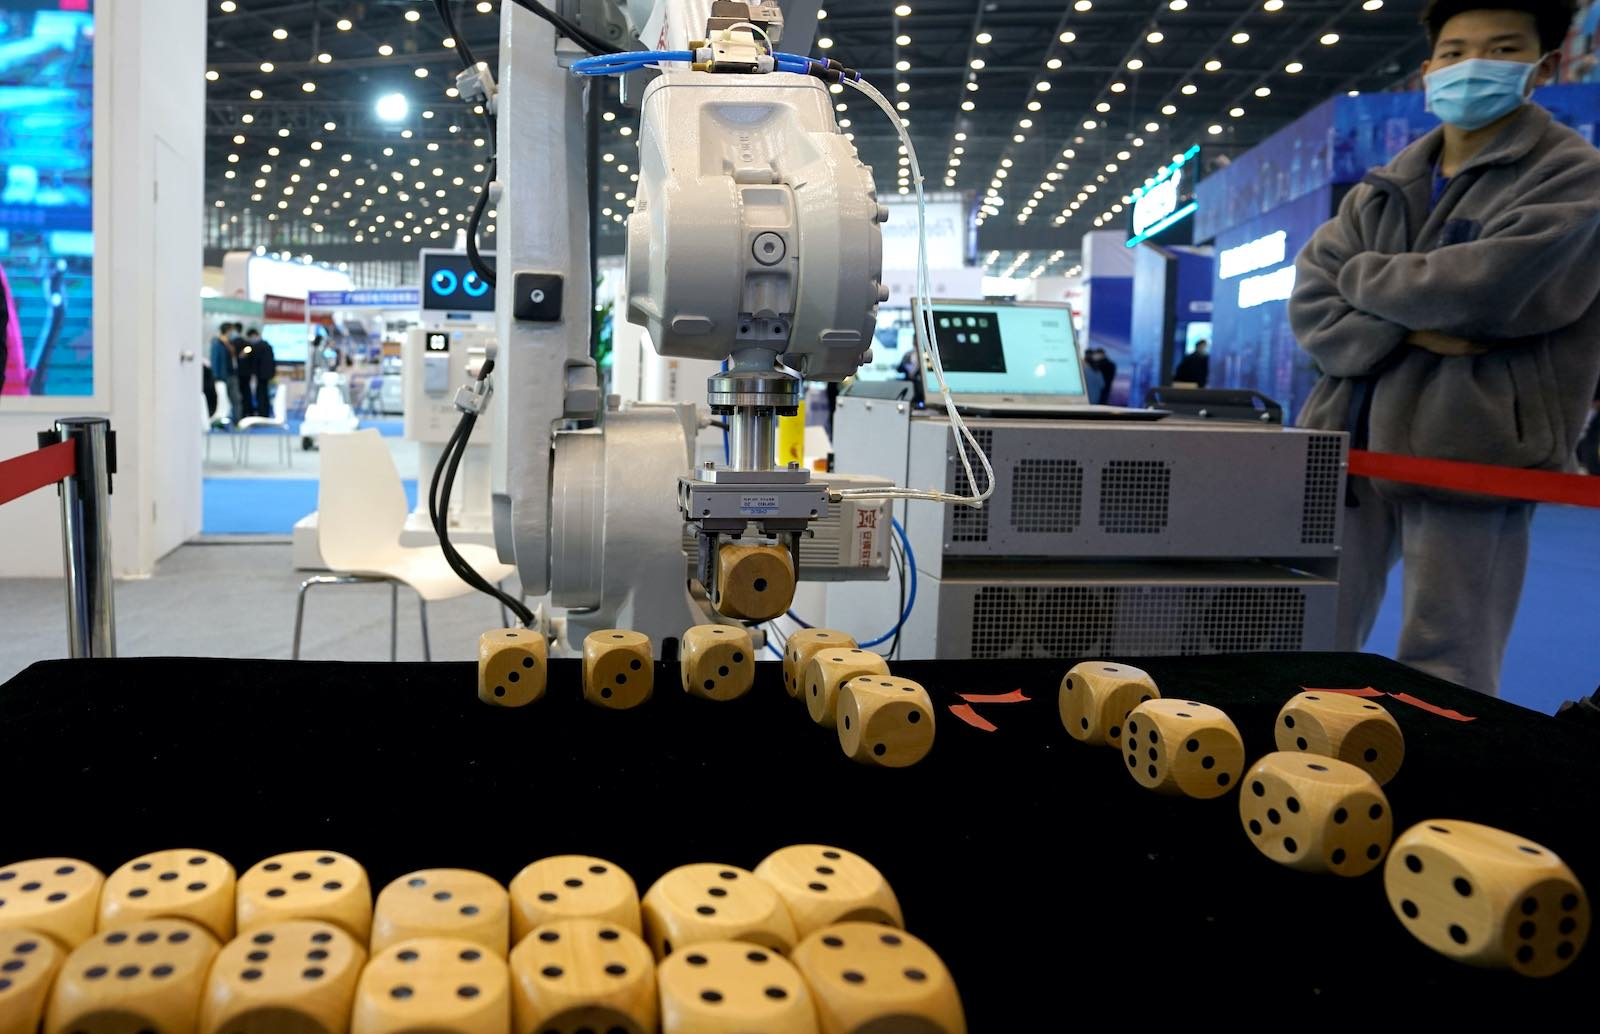 A robotic arm arranges dice during the 2021 World Digital Industry Expo in Zhengzhou, Henan province, China, 24 March 2021 (Ma Jian/VCG via Getty Images)